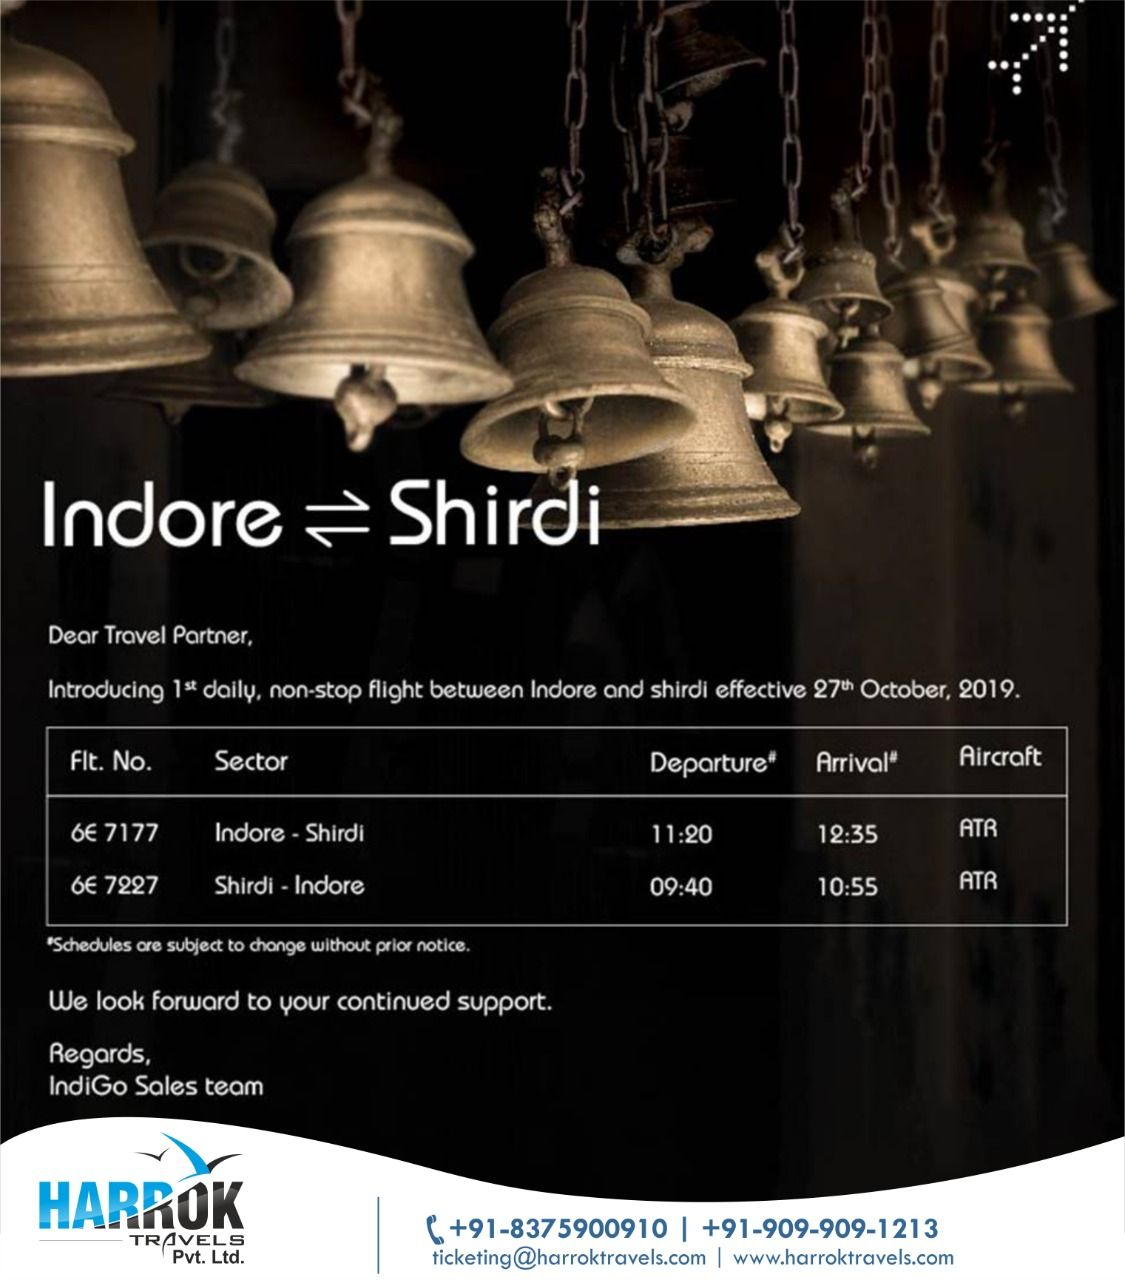 Fly Smart to Indore - Shirdi ✈️ With IndiGo (fixed departure) #Indigo Cheapest airfares with the best discounts and deals on domestic and international flights booking around the world. Call Us: +91-8375900910, +91- 909-909-1213 Harrok Travels Services ⭐Air Ticketing ⭐Visa Assistance ⭐Hotel Reservations ⭐Holiday Packages ⭐Travel Insurance ⭐Currency Exchange ⭐Passport Service  #economyclass #flight #cheapfares #cheapairticket #traveldeal #flightdeal #airticketeting #flightbooking #specialairfare